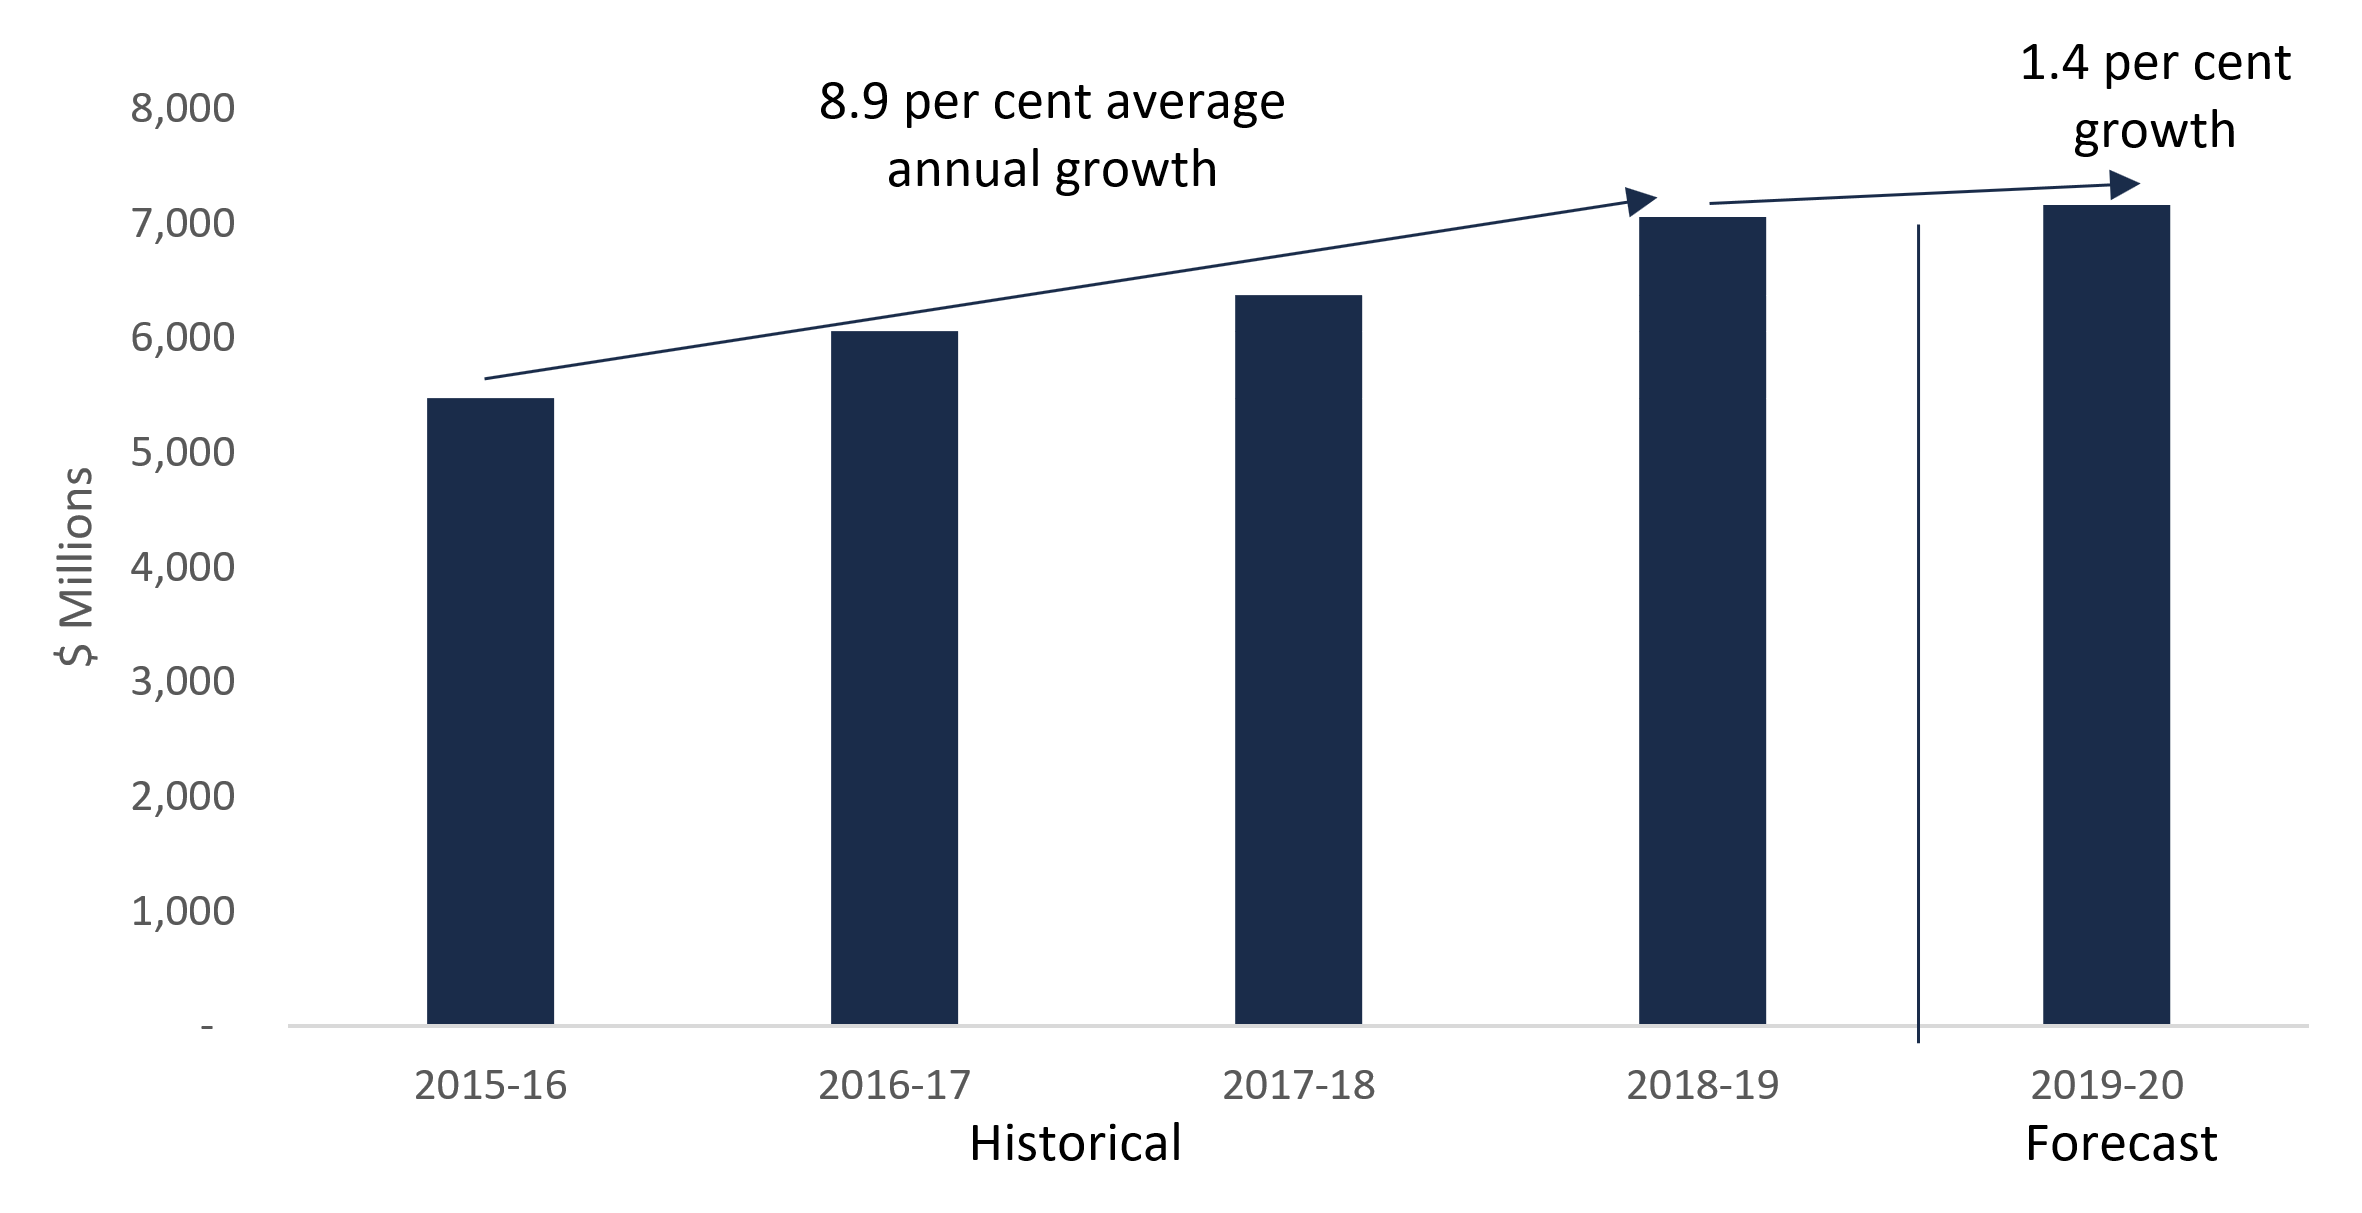 Service fee revenue growth, 2015-16 to 2019-20